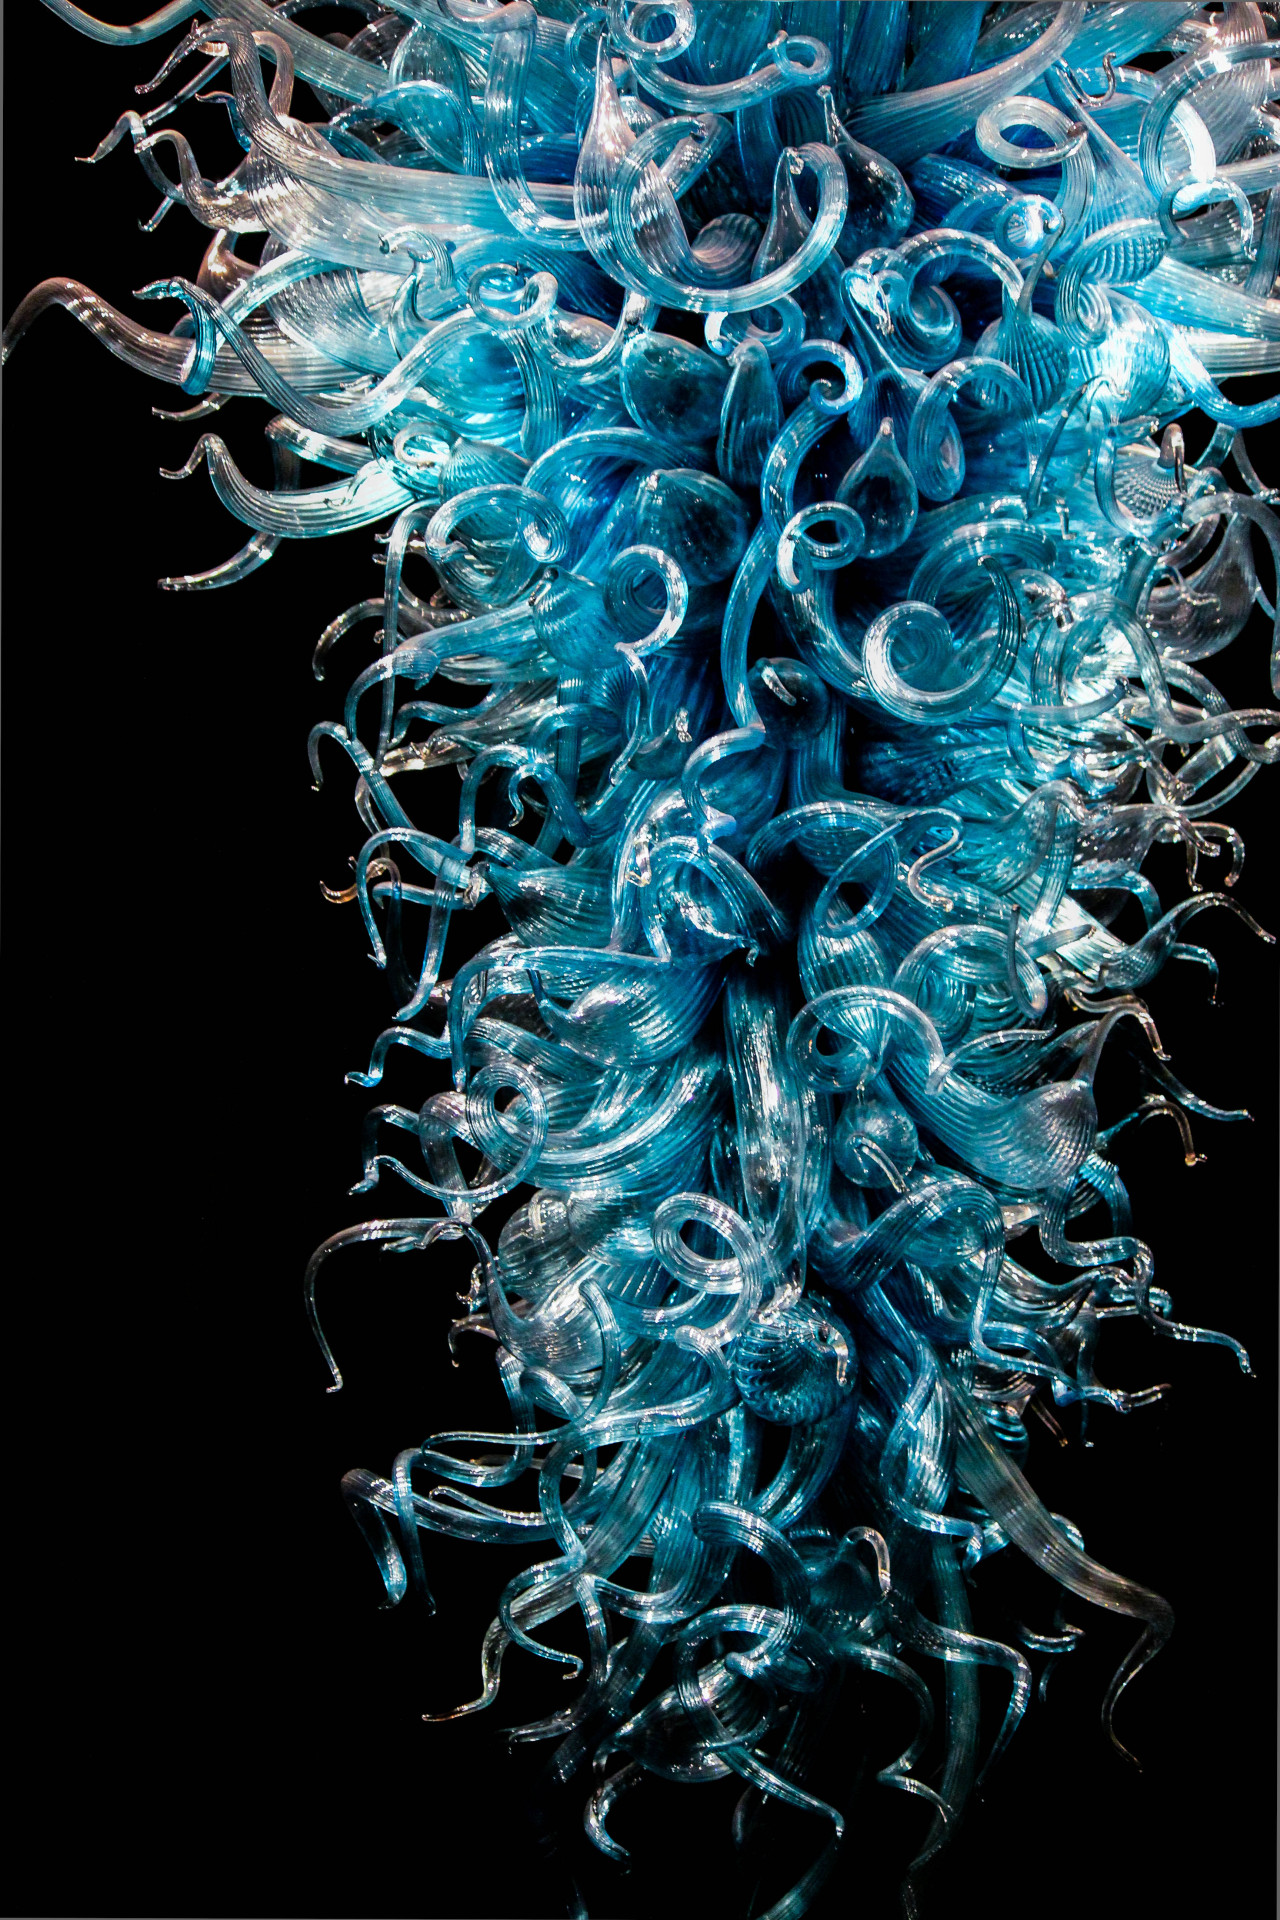 dale chihuly:blown glass sculpture